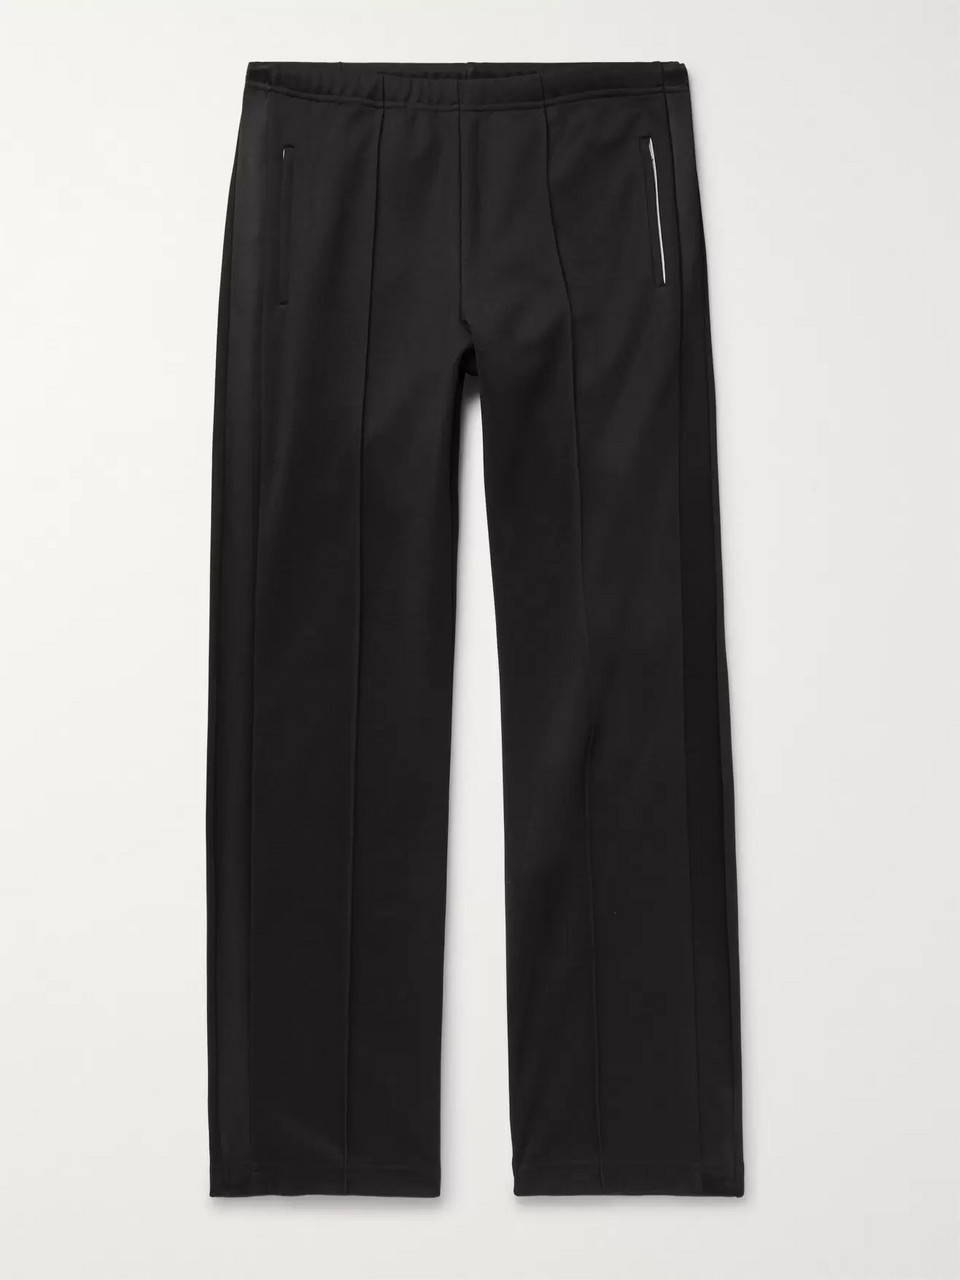 Maison Margiela Satin-Trimmed Tech-Jersey Trousers